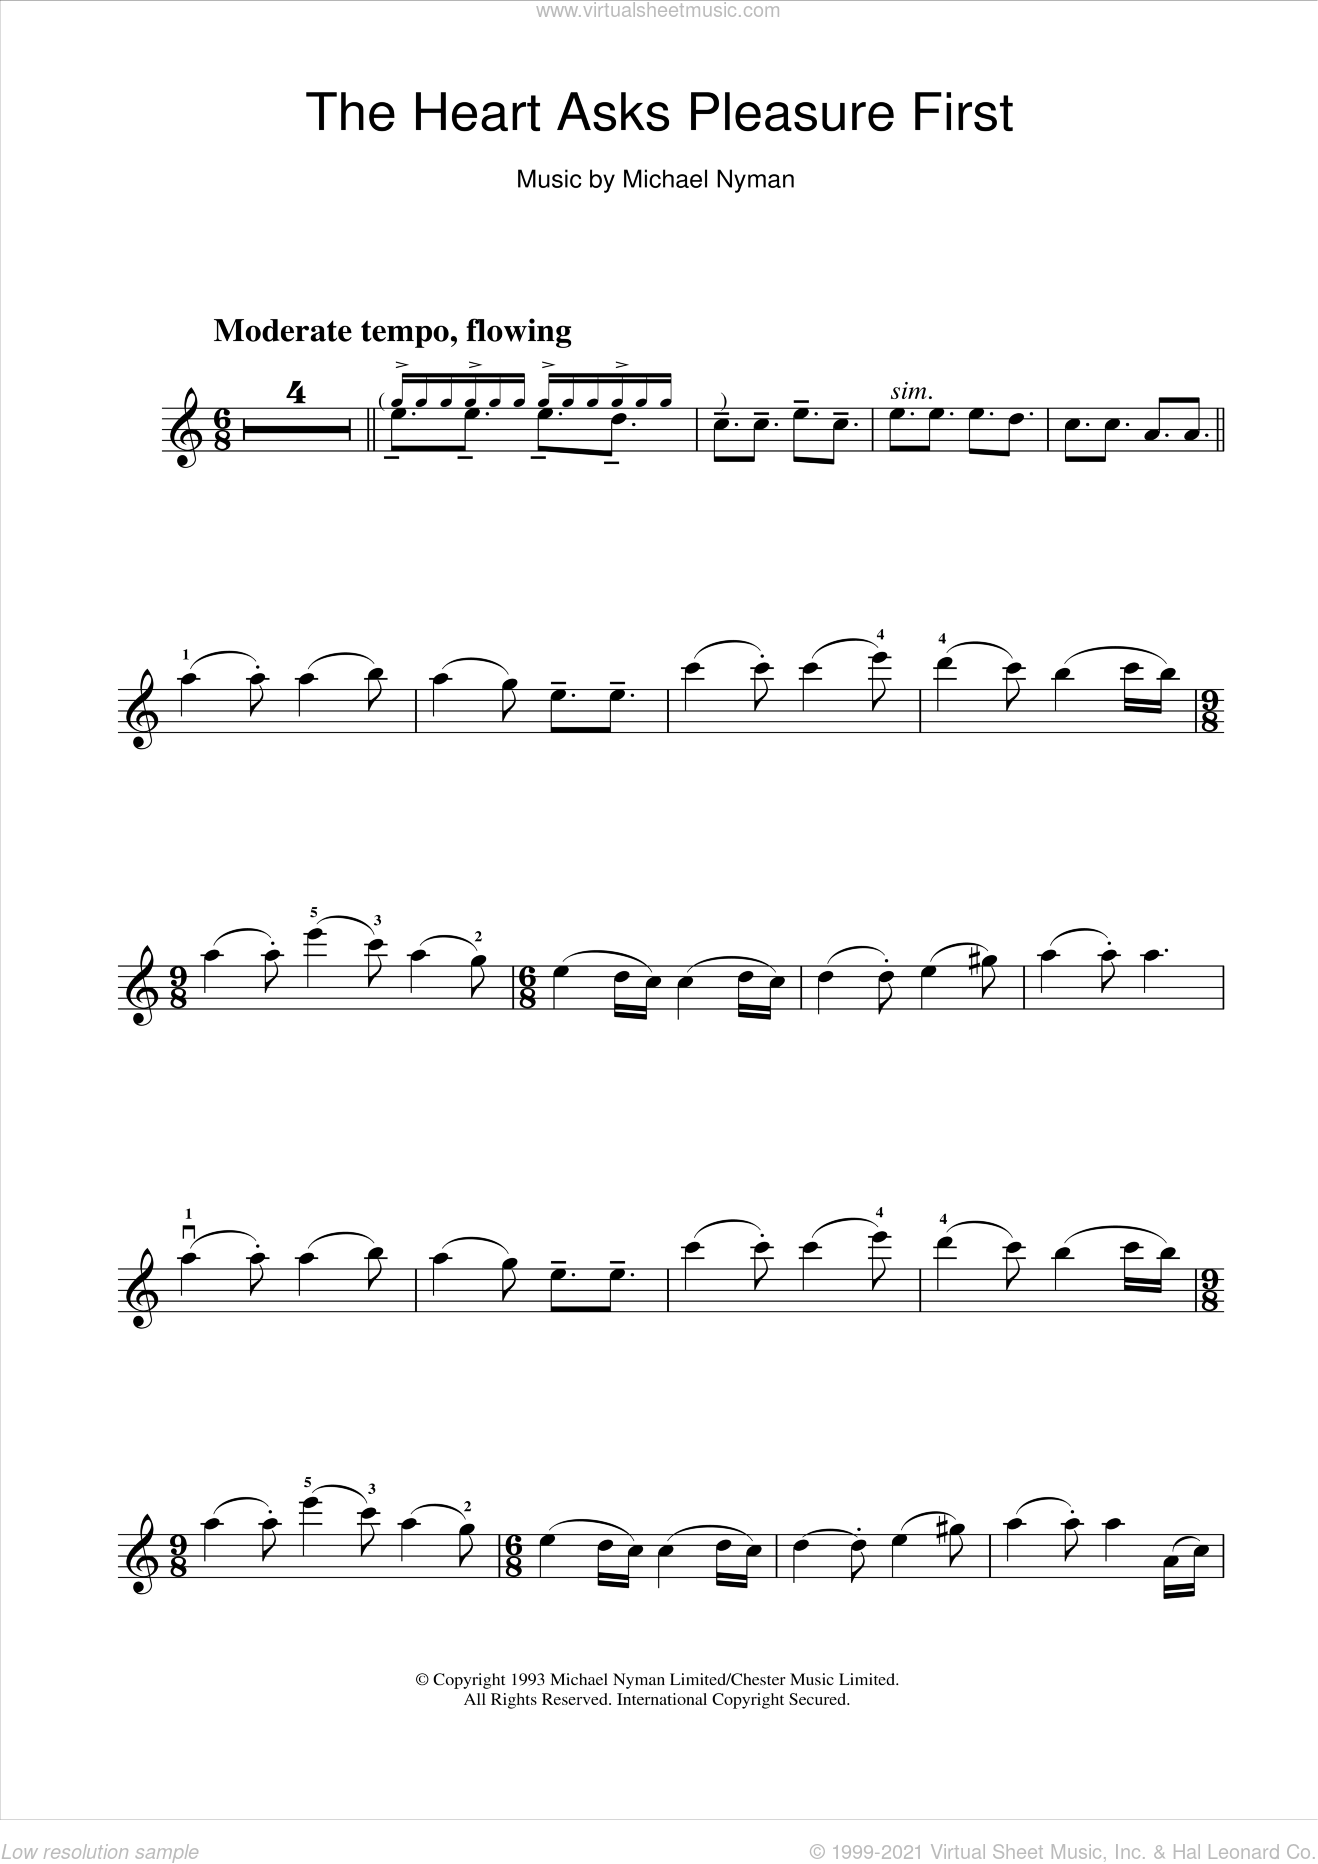 The Heart Asks Pleasure First: The Promise/The Sacrifice (from The Piano) sheet music for violin solo by Michael Nyman, intermediate